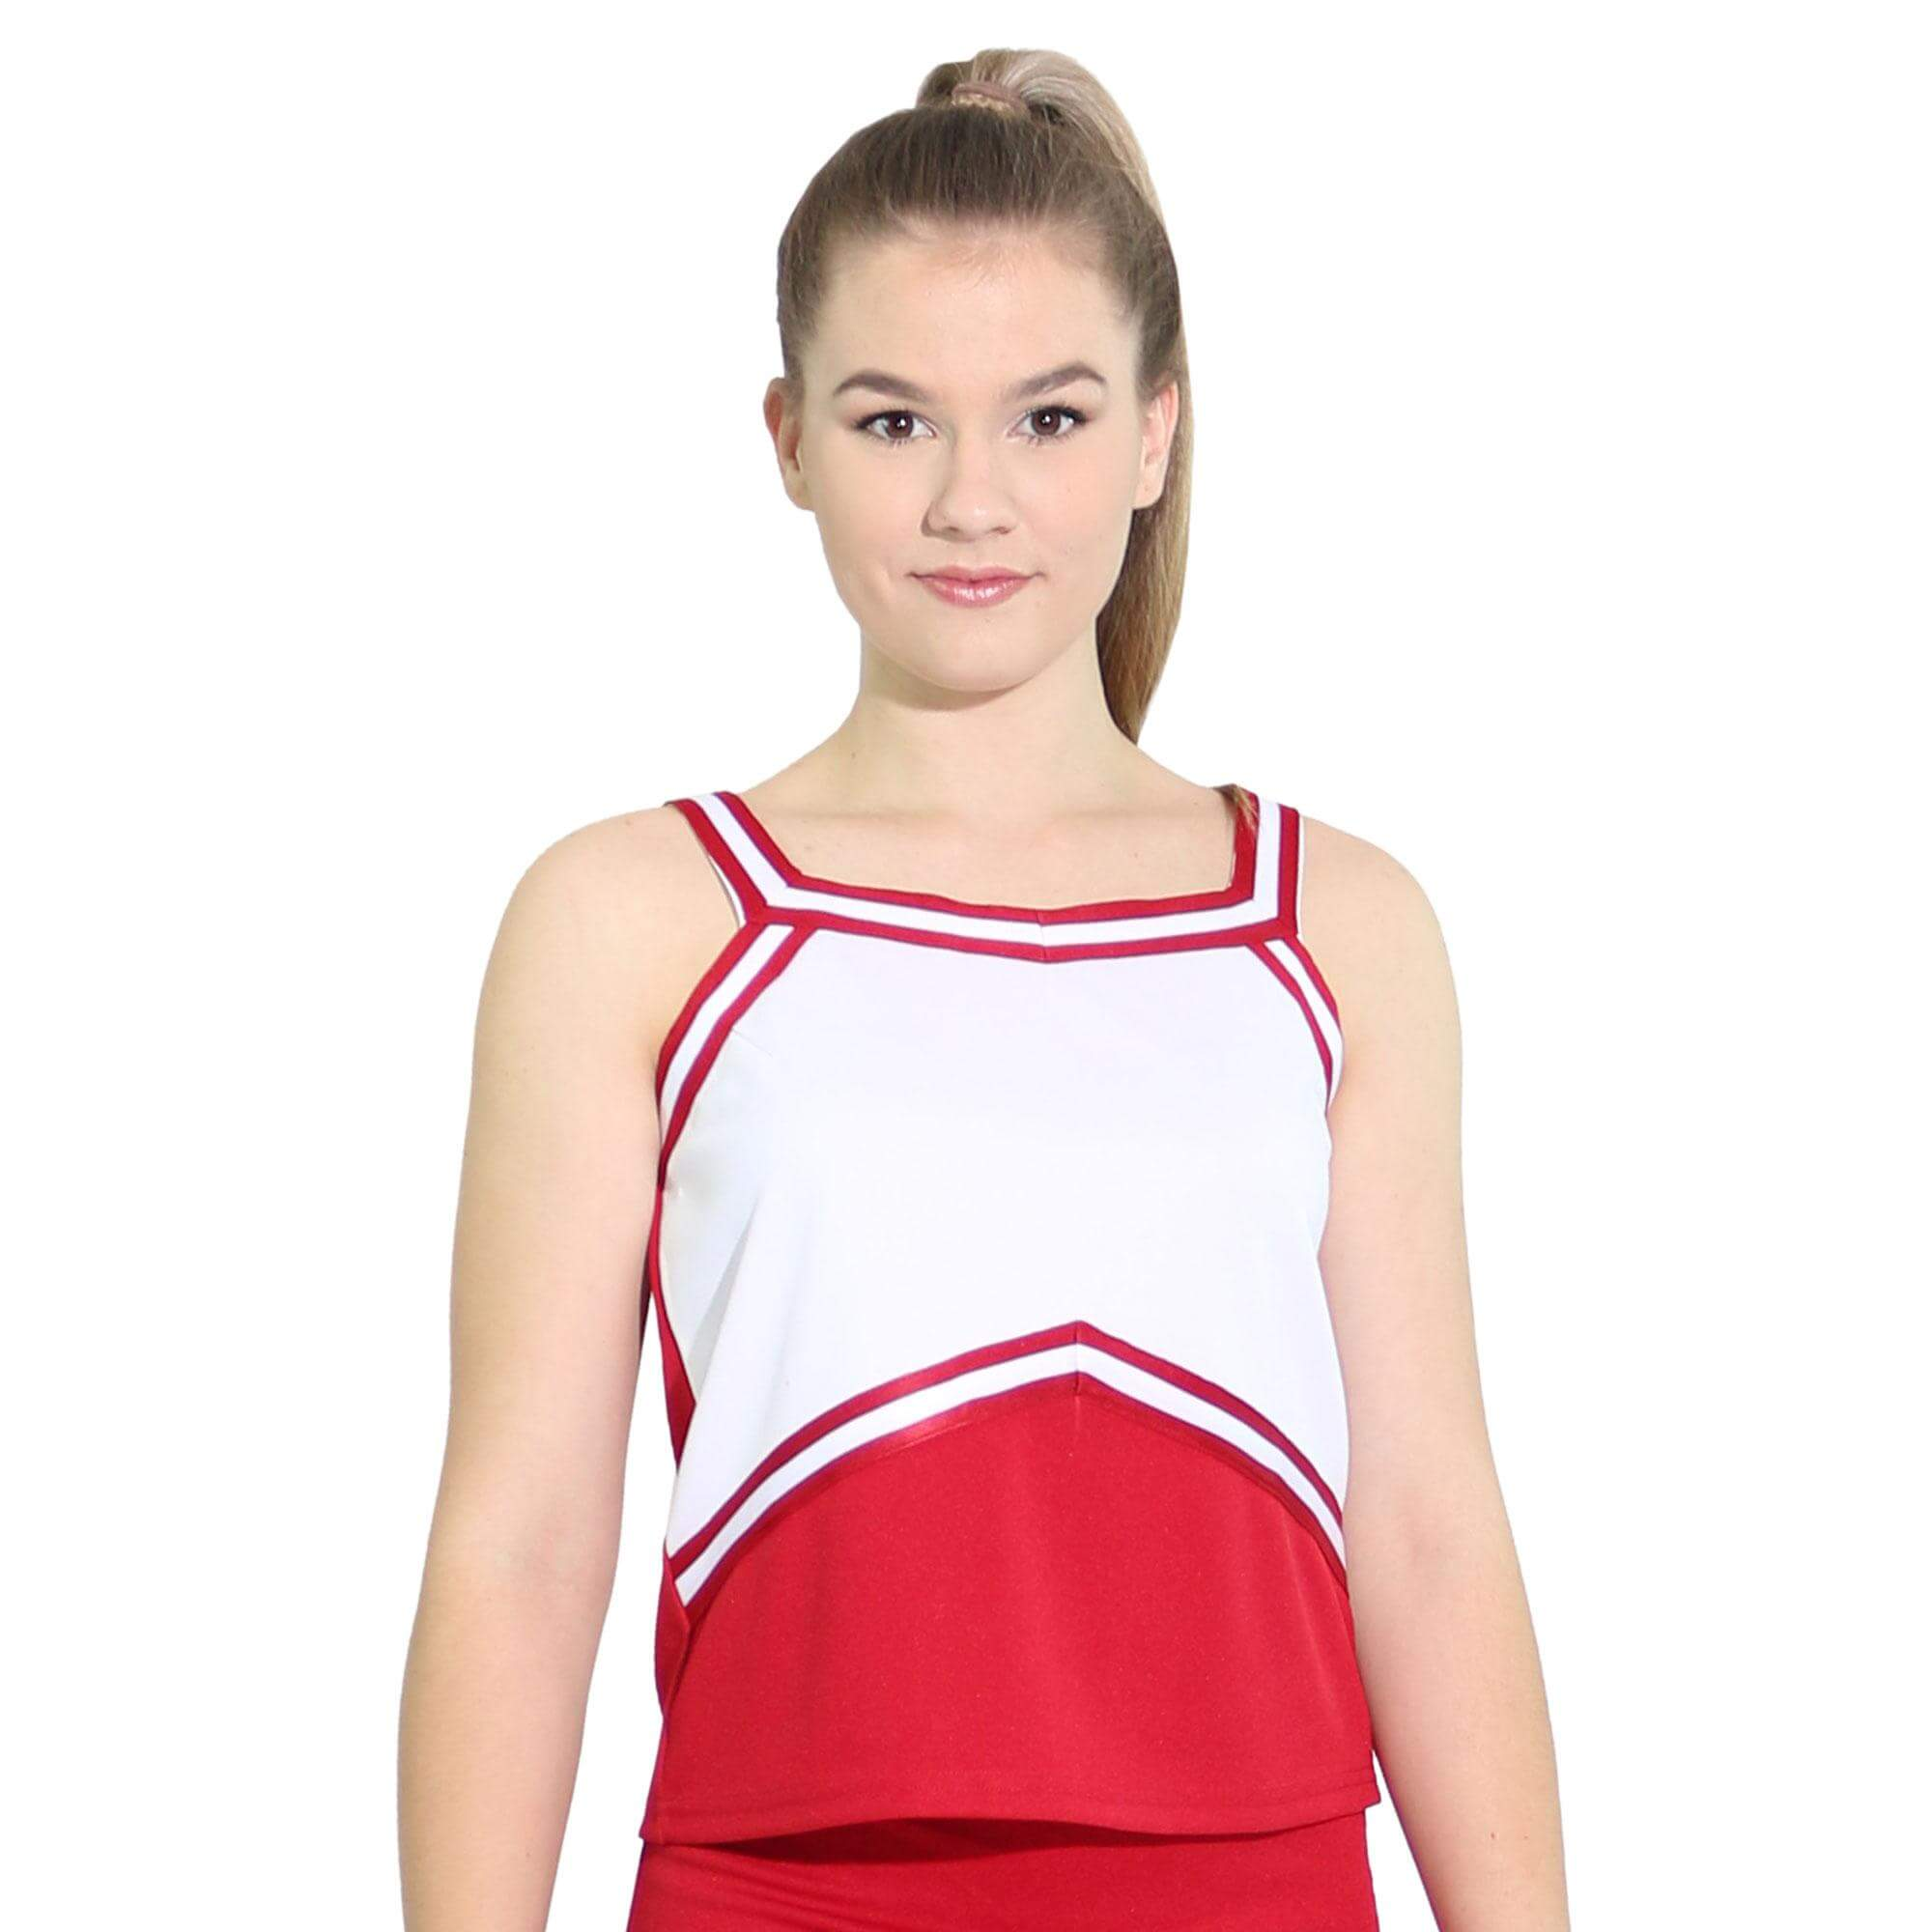 Danzcue Adult Sweetheart Cheerleaders Uniform Shell Top